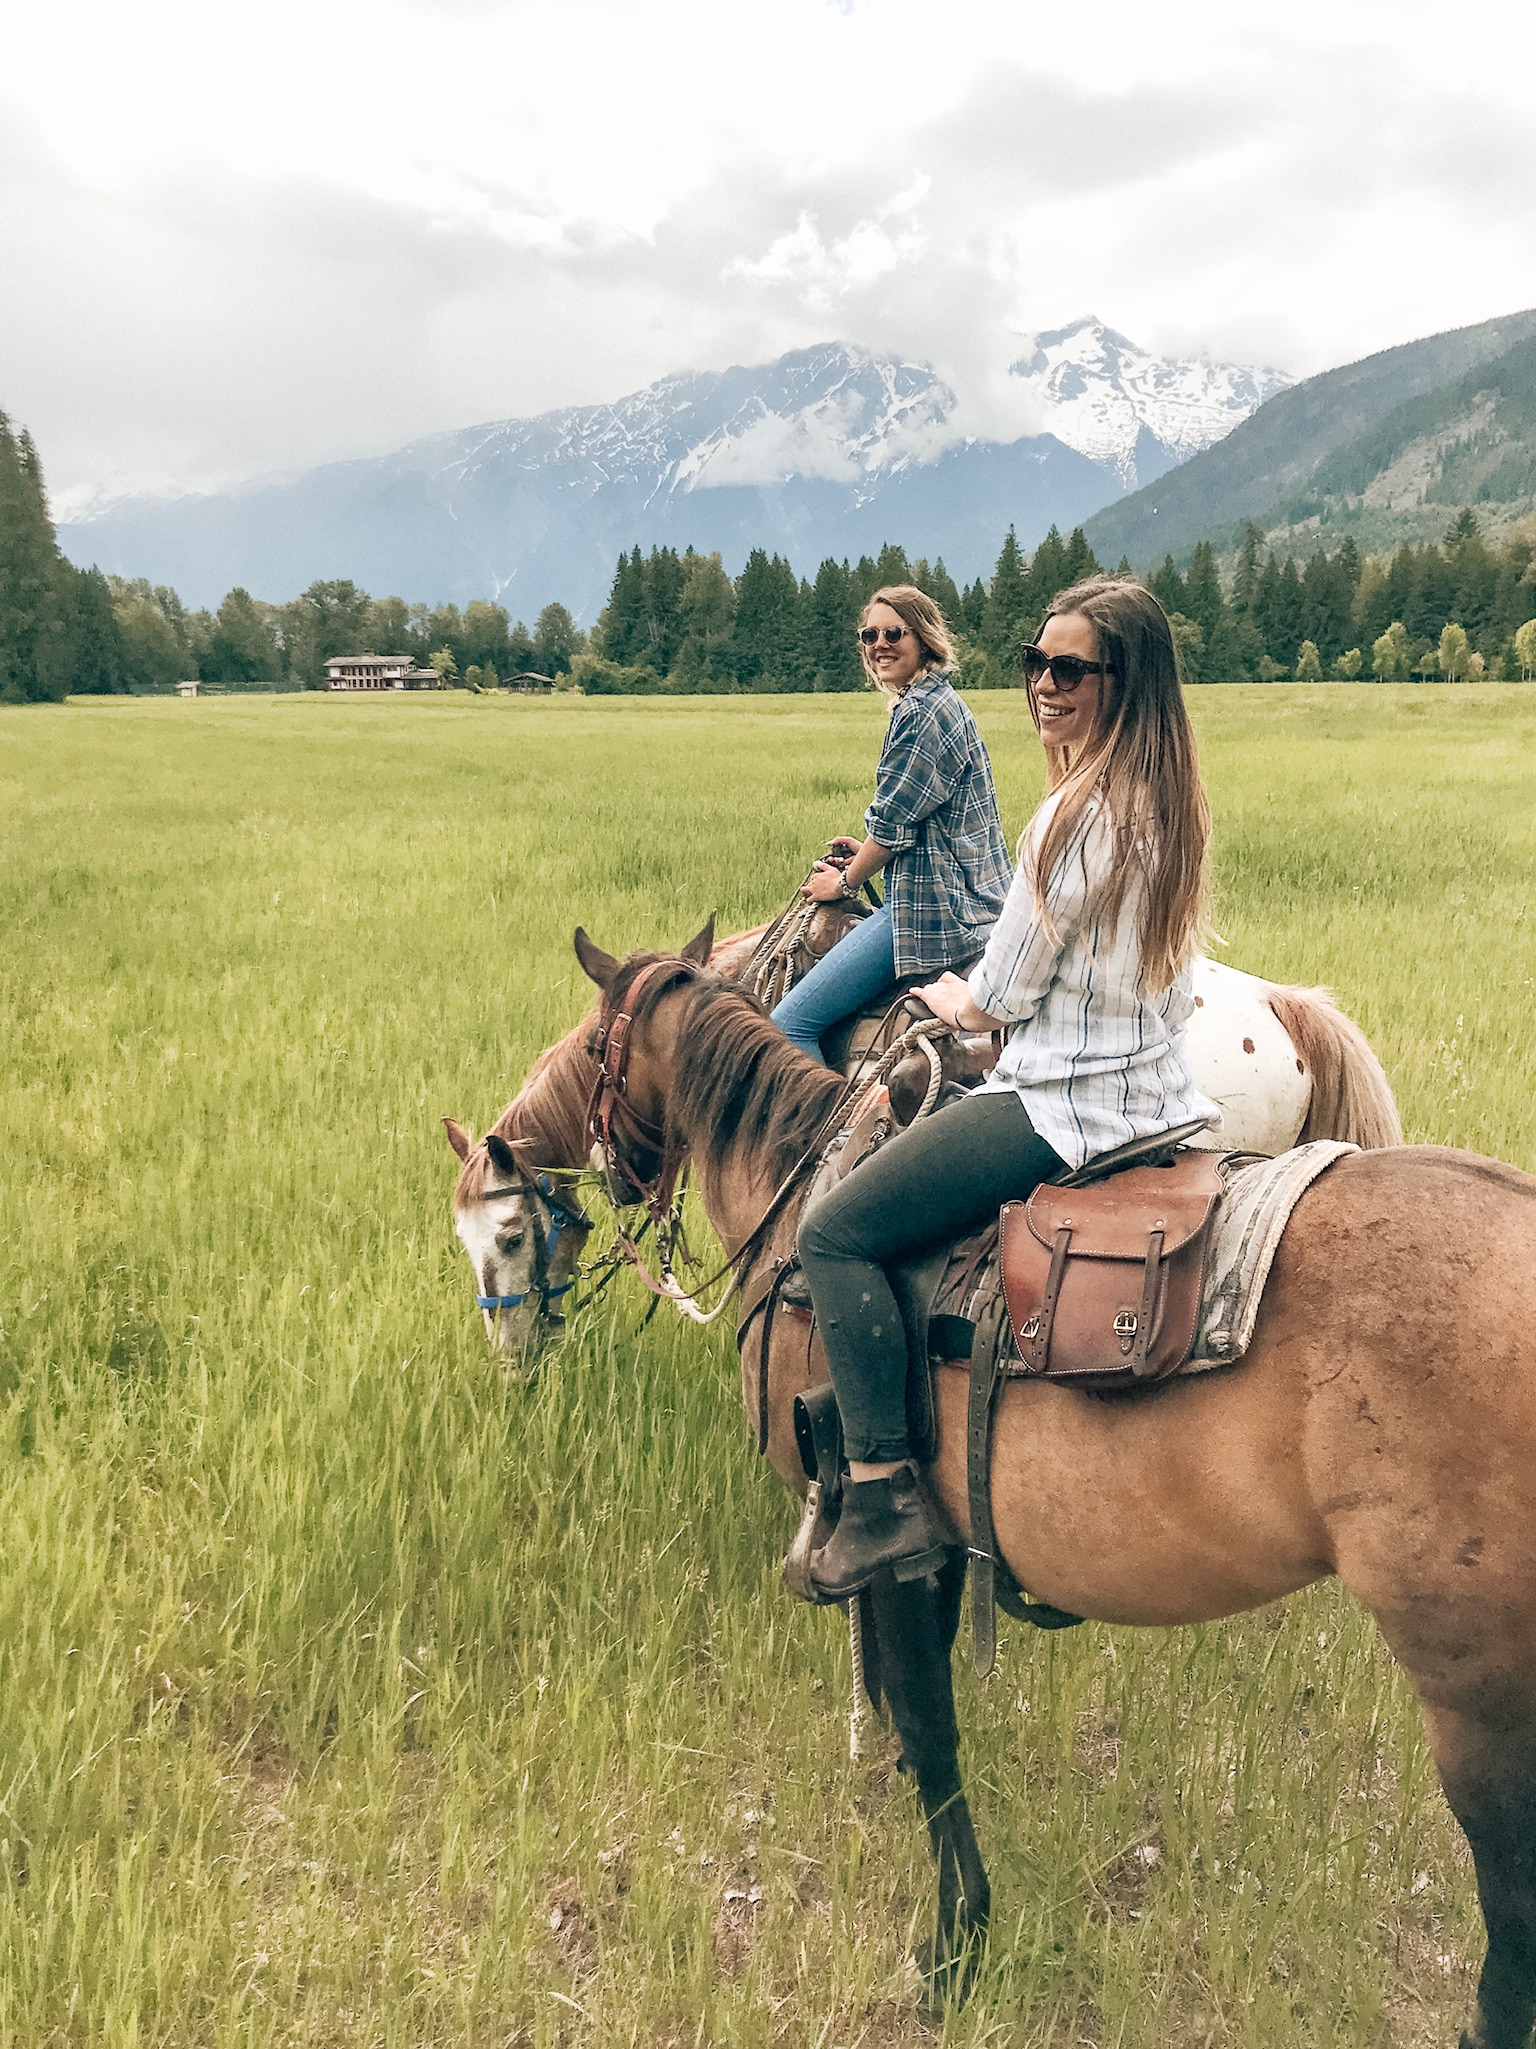 Hourly Horseback Rides in Canada: Horseriding in Pemberton BC